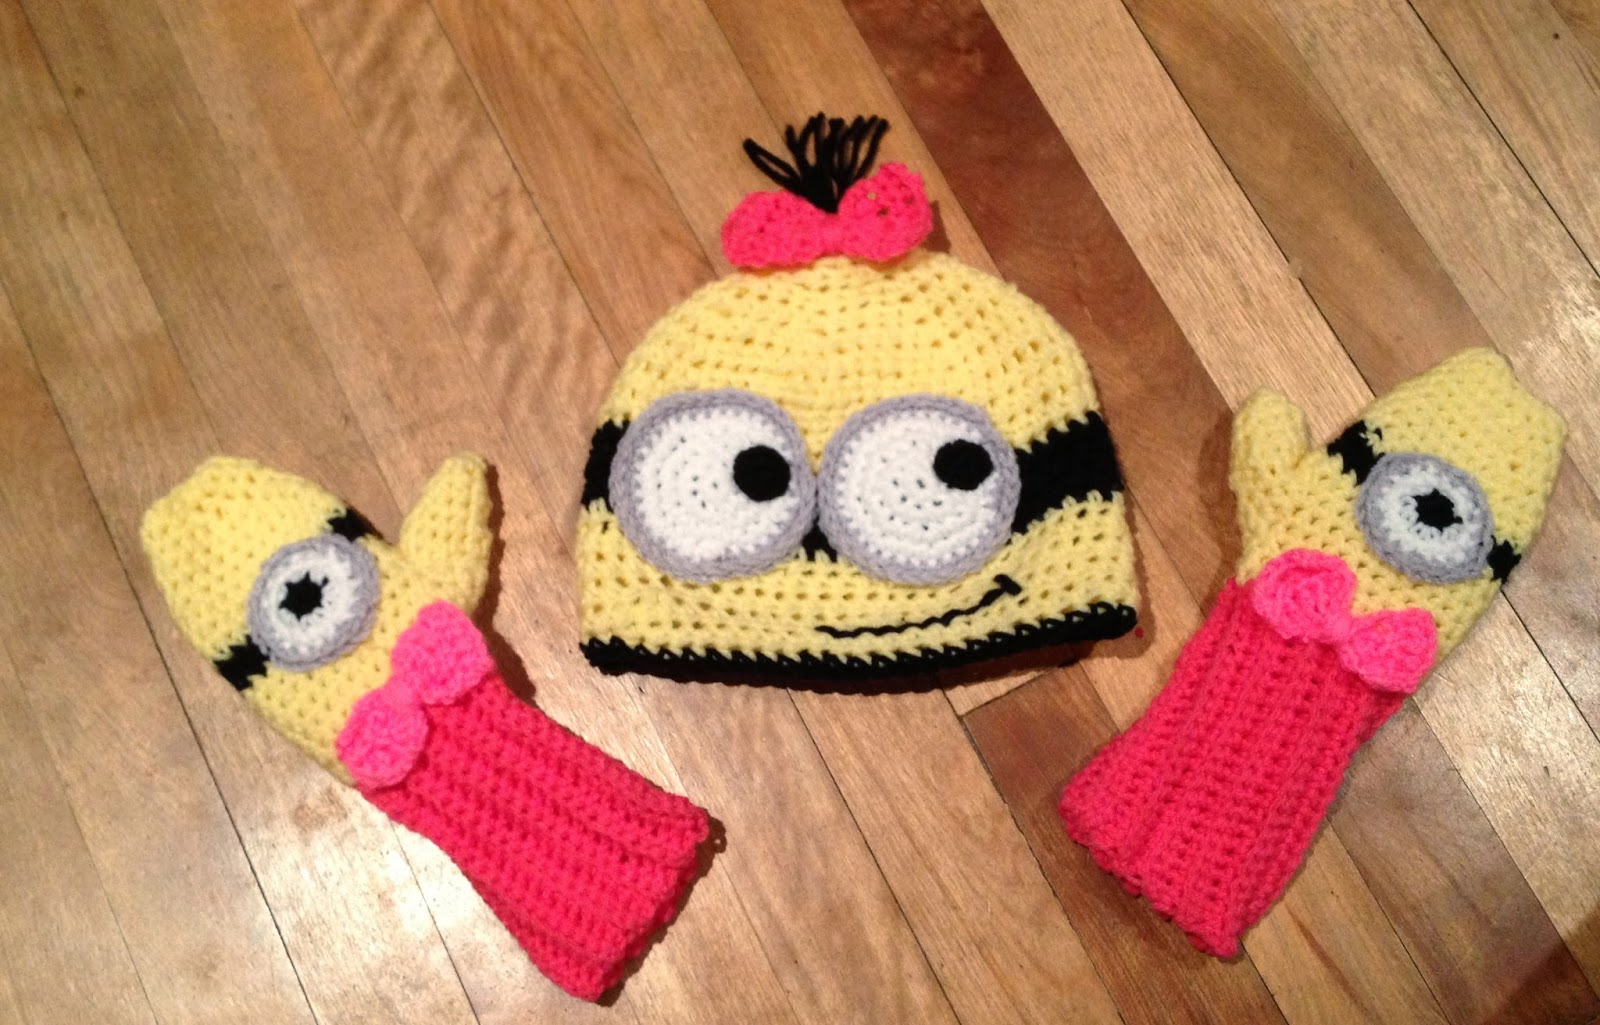 Free Crochet Hat Patterns For Minions : Free Crochet Connection: MINION HAT AND MITTENS SET